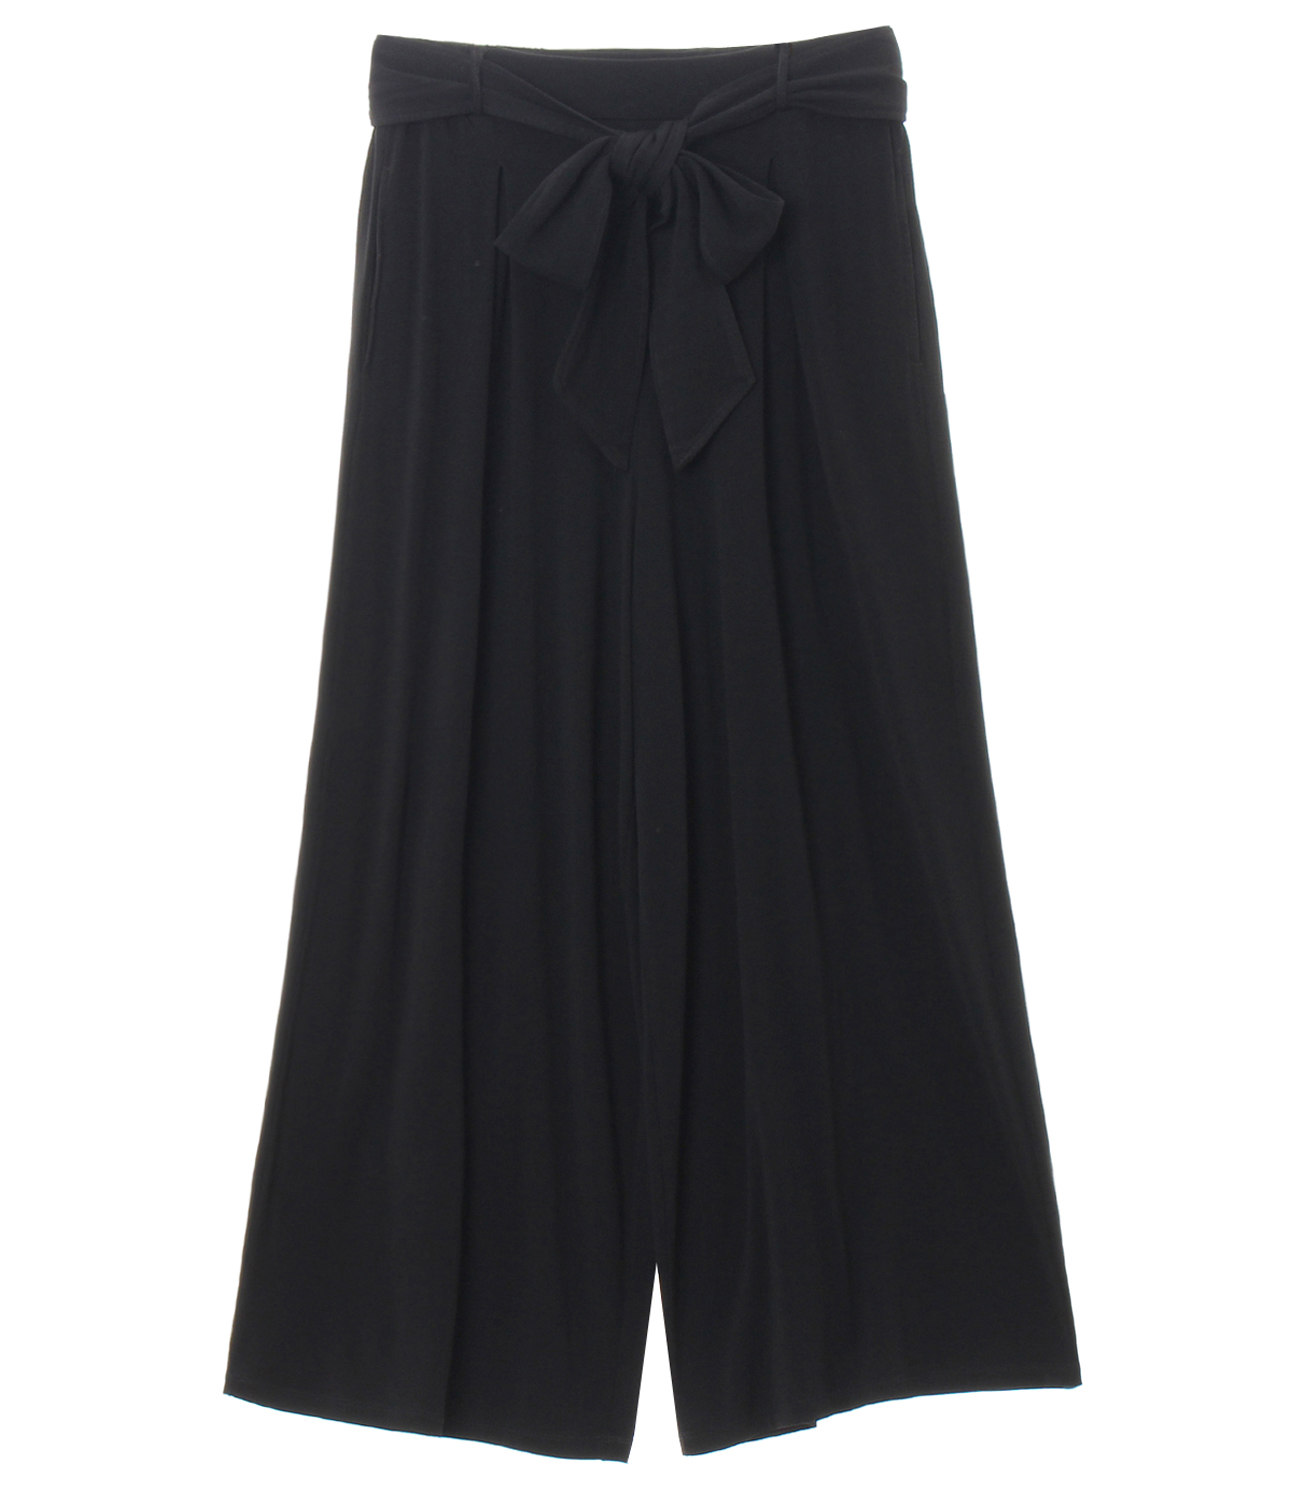 travel line tuck wide pant 詳細画像 black 1